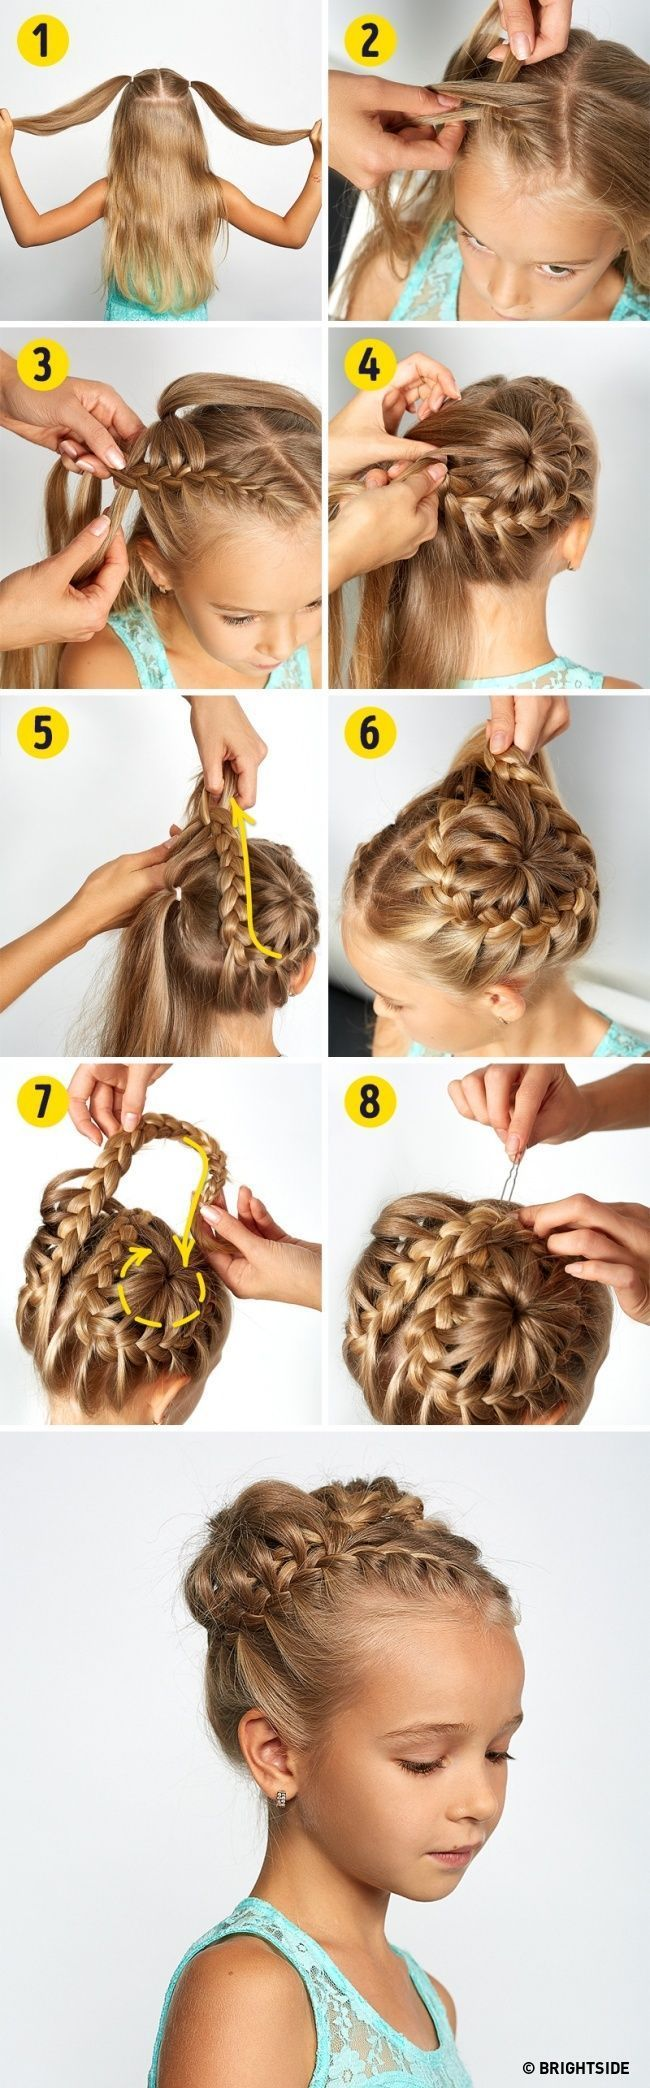 best Прически images on pinterest hairstyle ideas girl